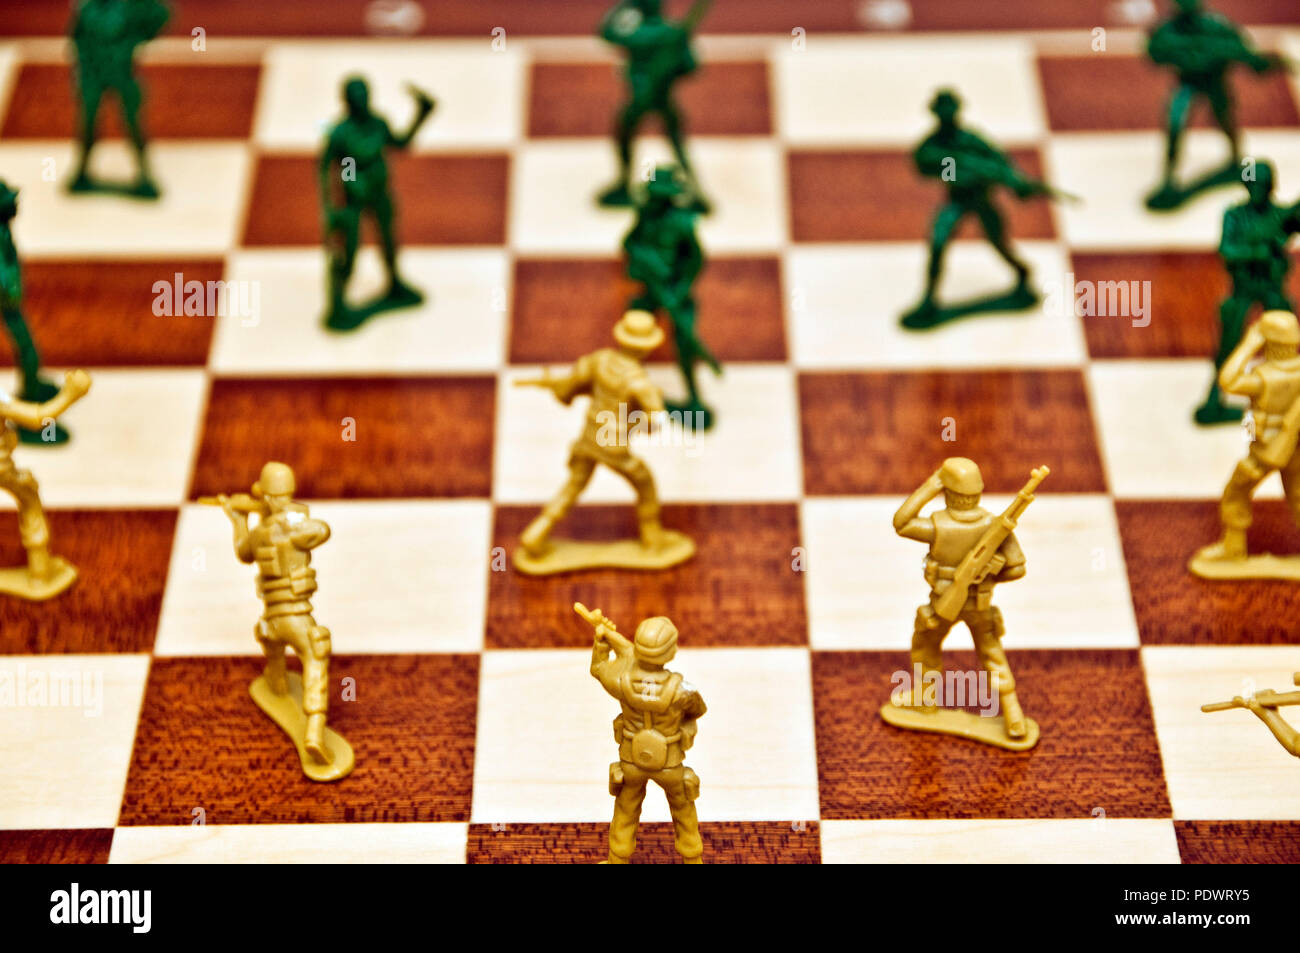 plastic toy soldiers on a chessboard - Stock Image